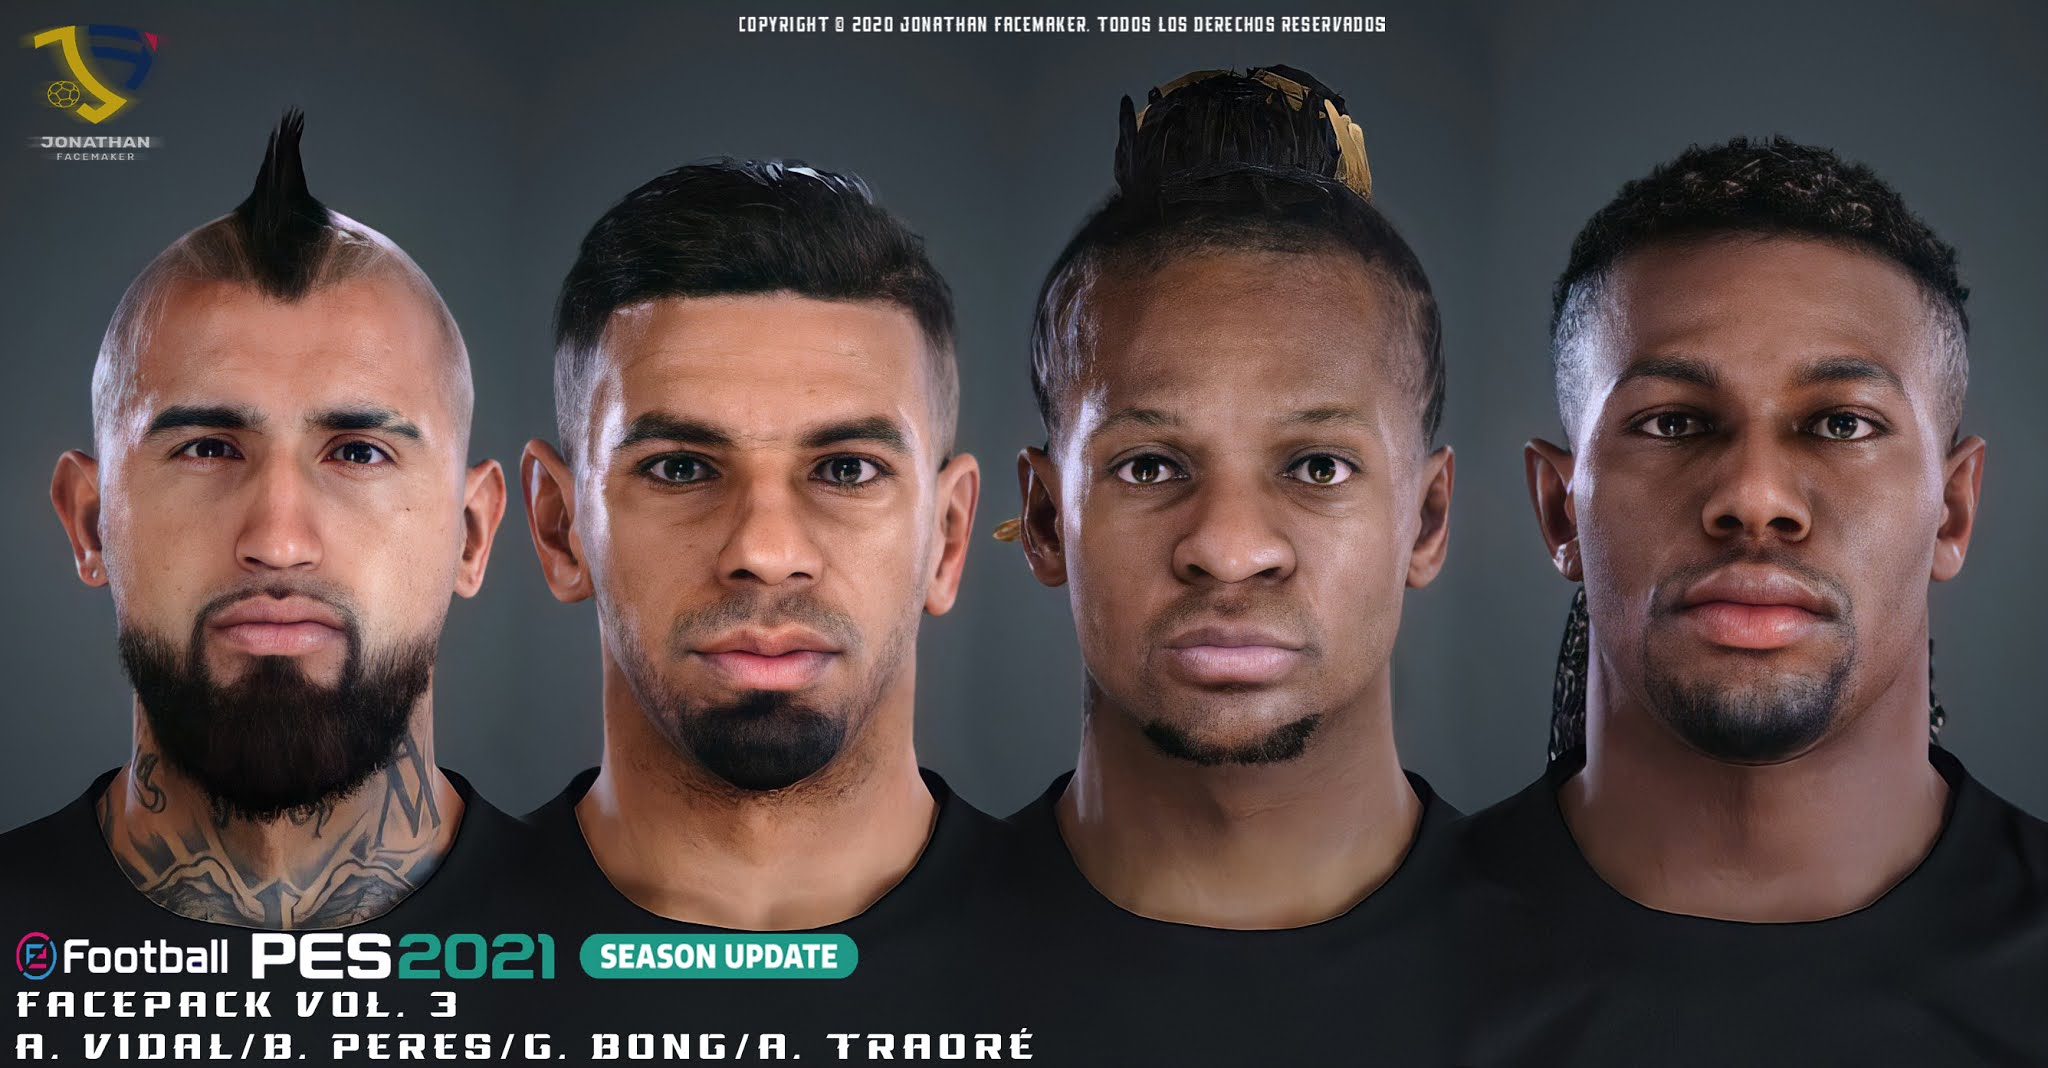 PES 2021 Facepack Vol. 3 by Jonathan Facemaker